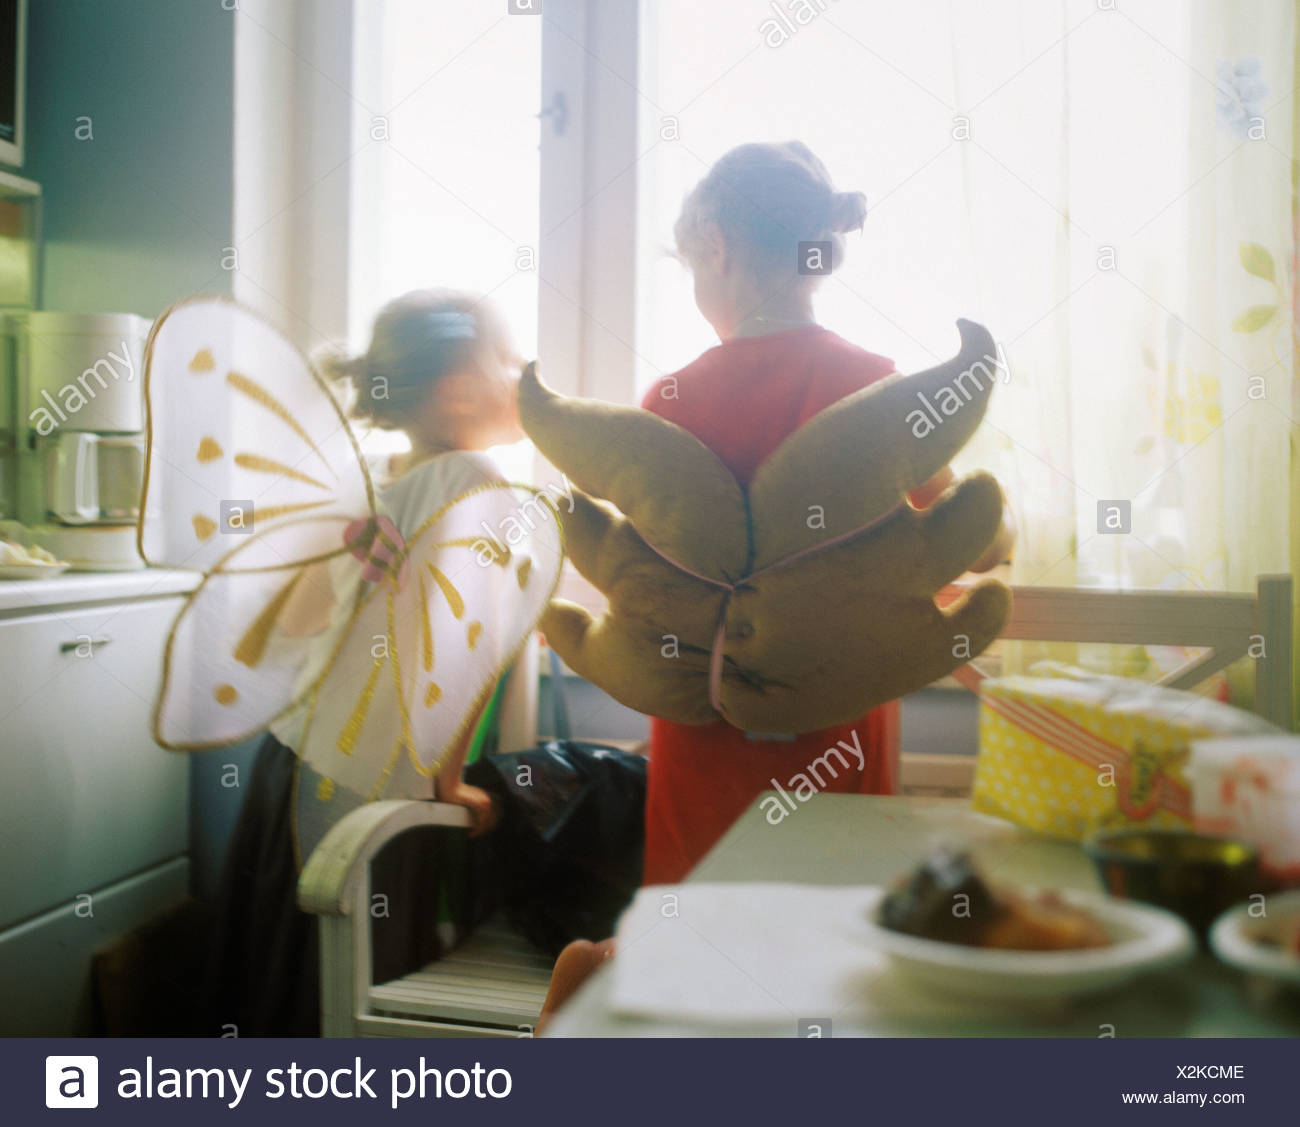 Rear view of two girls wearing fairy costume and standing near a window - Stock Image